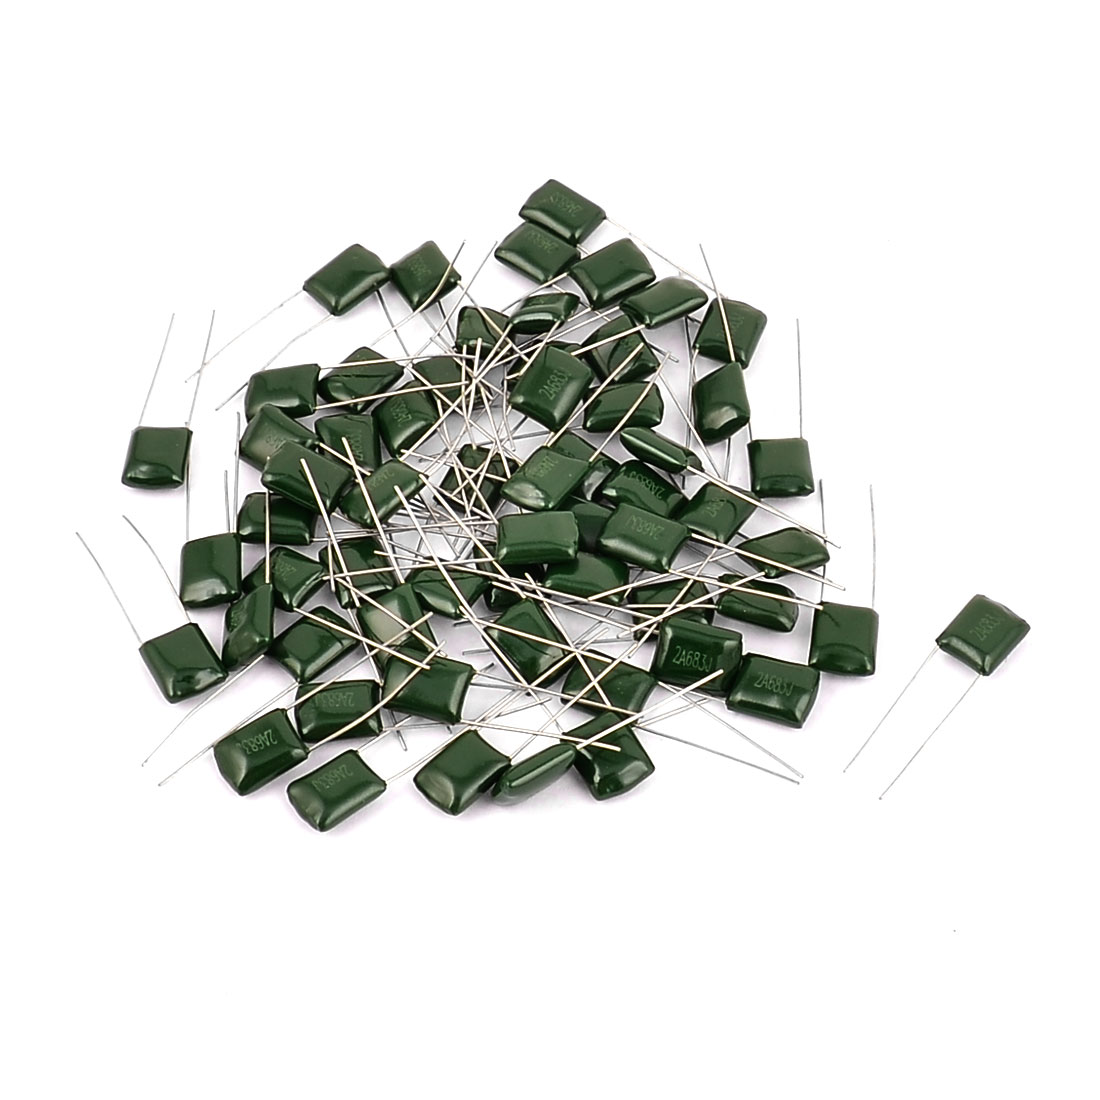 60pcs 2A683J 100V 0.068uF 5% Radial Lead Polyester Film Capacitor